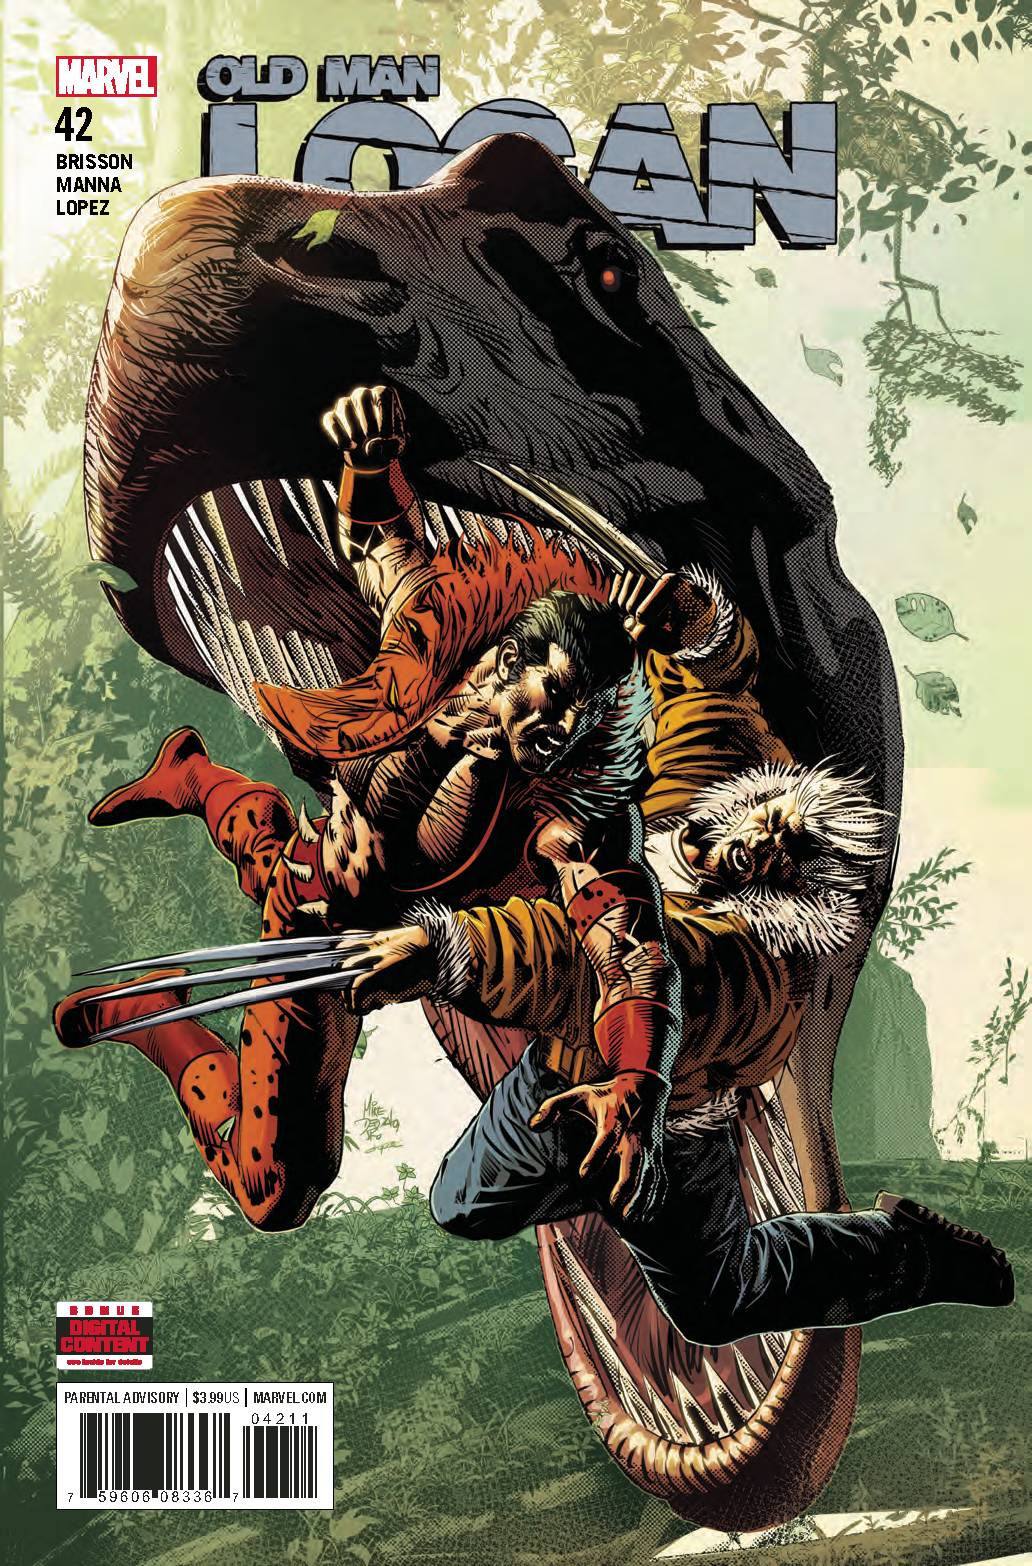 OLD MAN LOGAN #42 (06/27/2018)